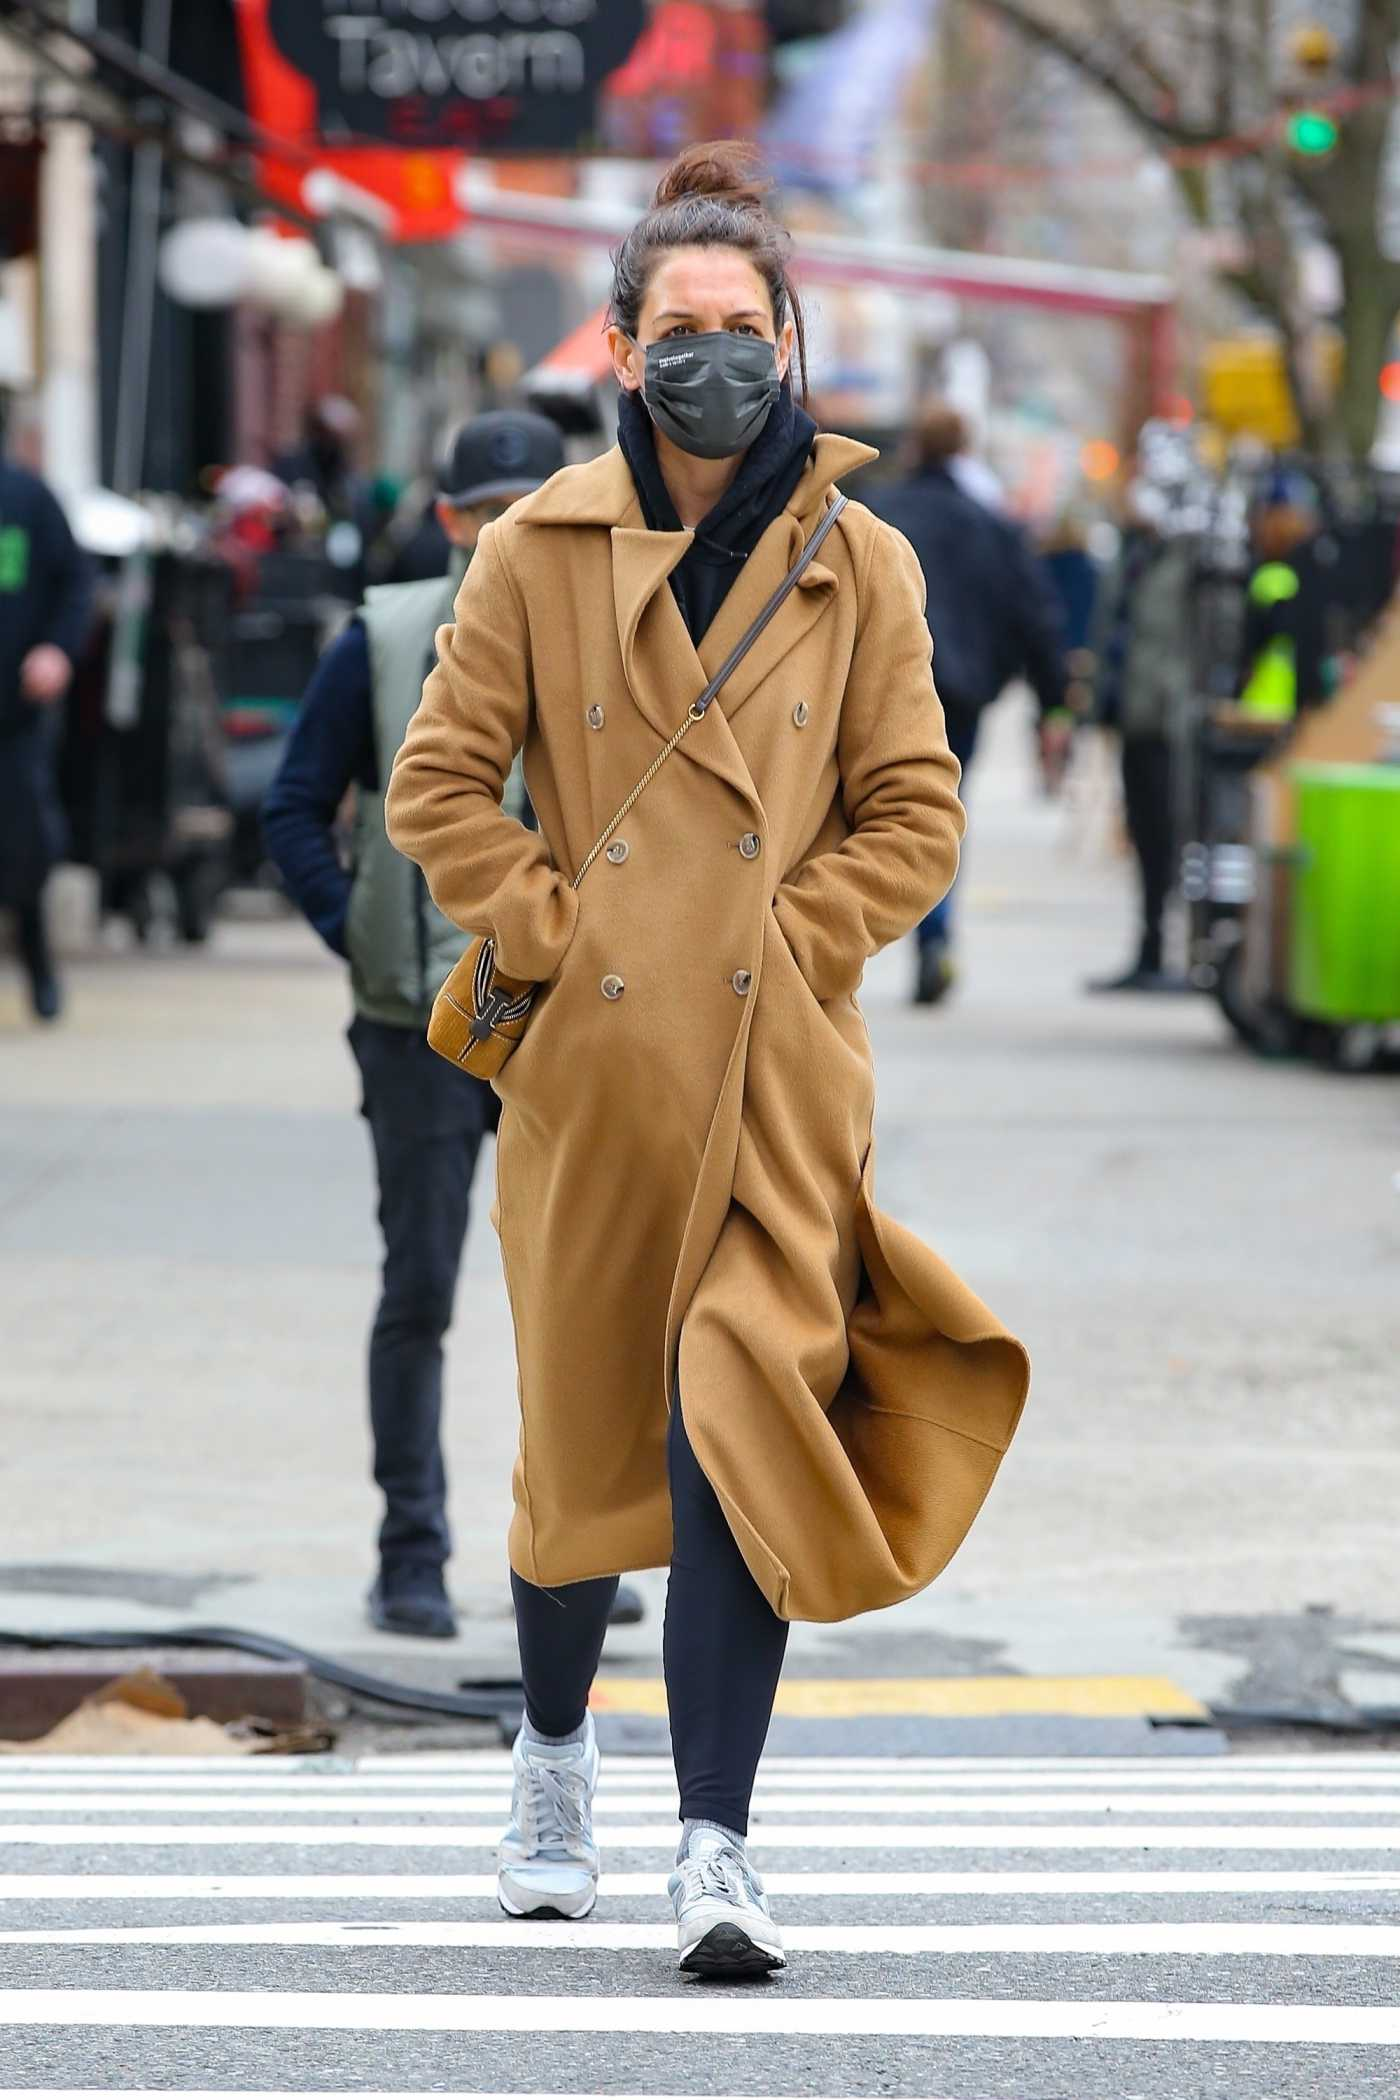 Katie Holmes in a Beige Coat Takes a Stroll in Manhattan's Downtown Area in NYC 03/04/2021